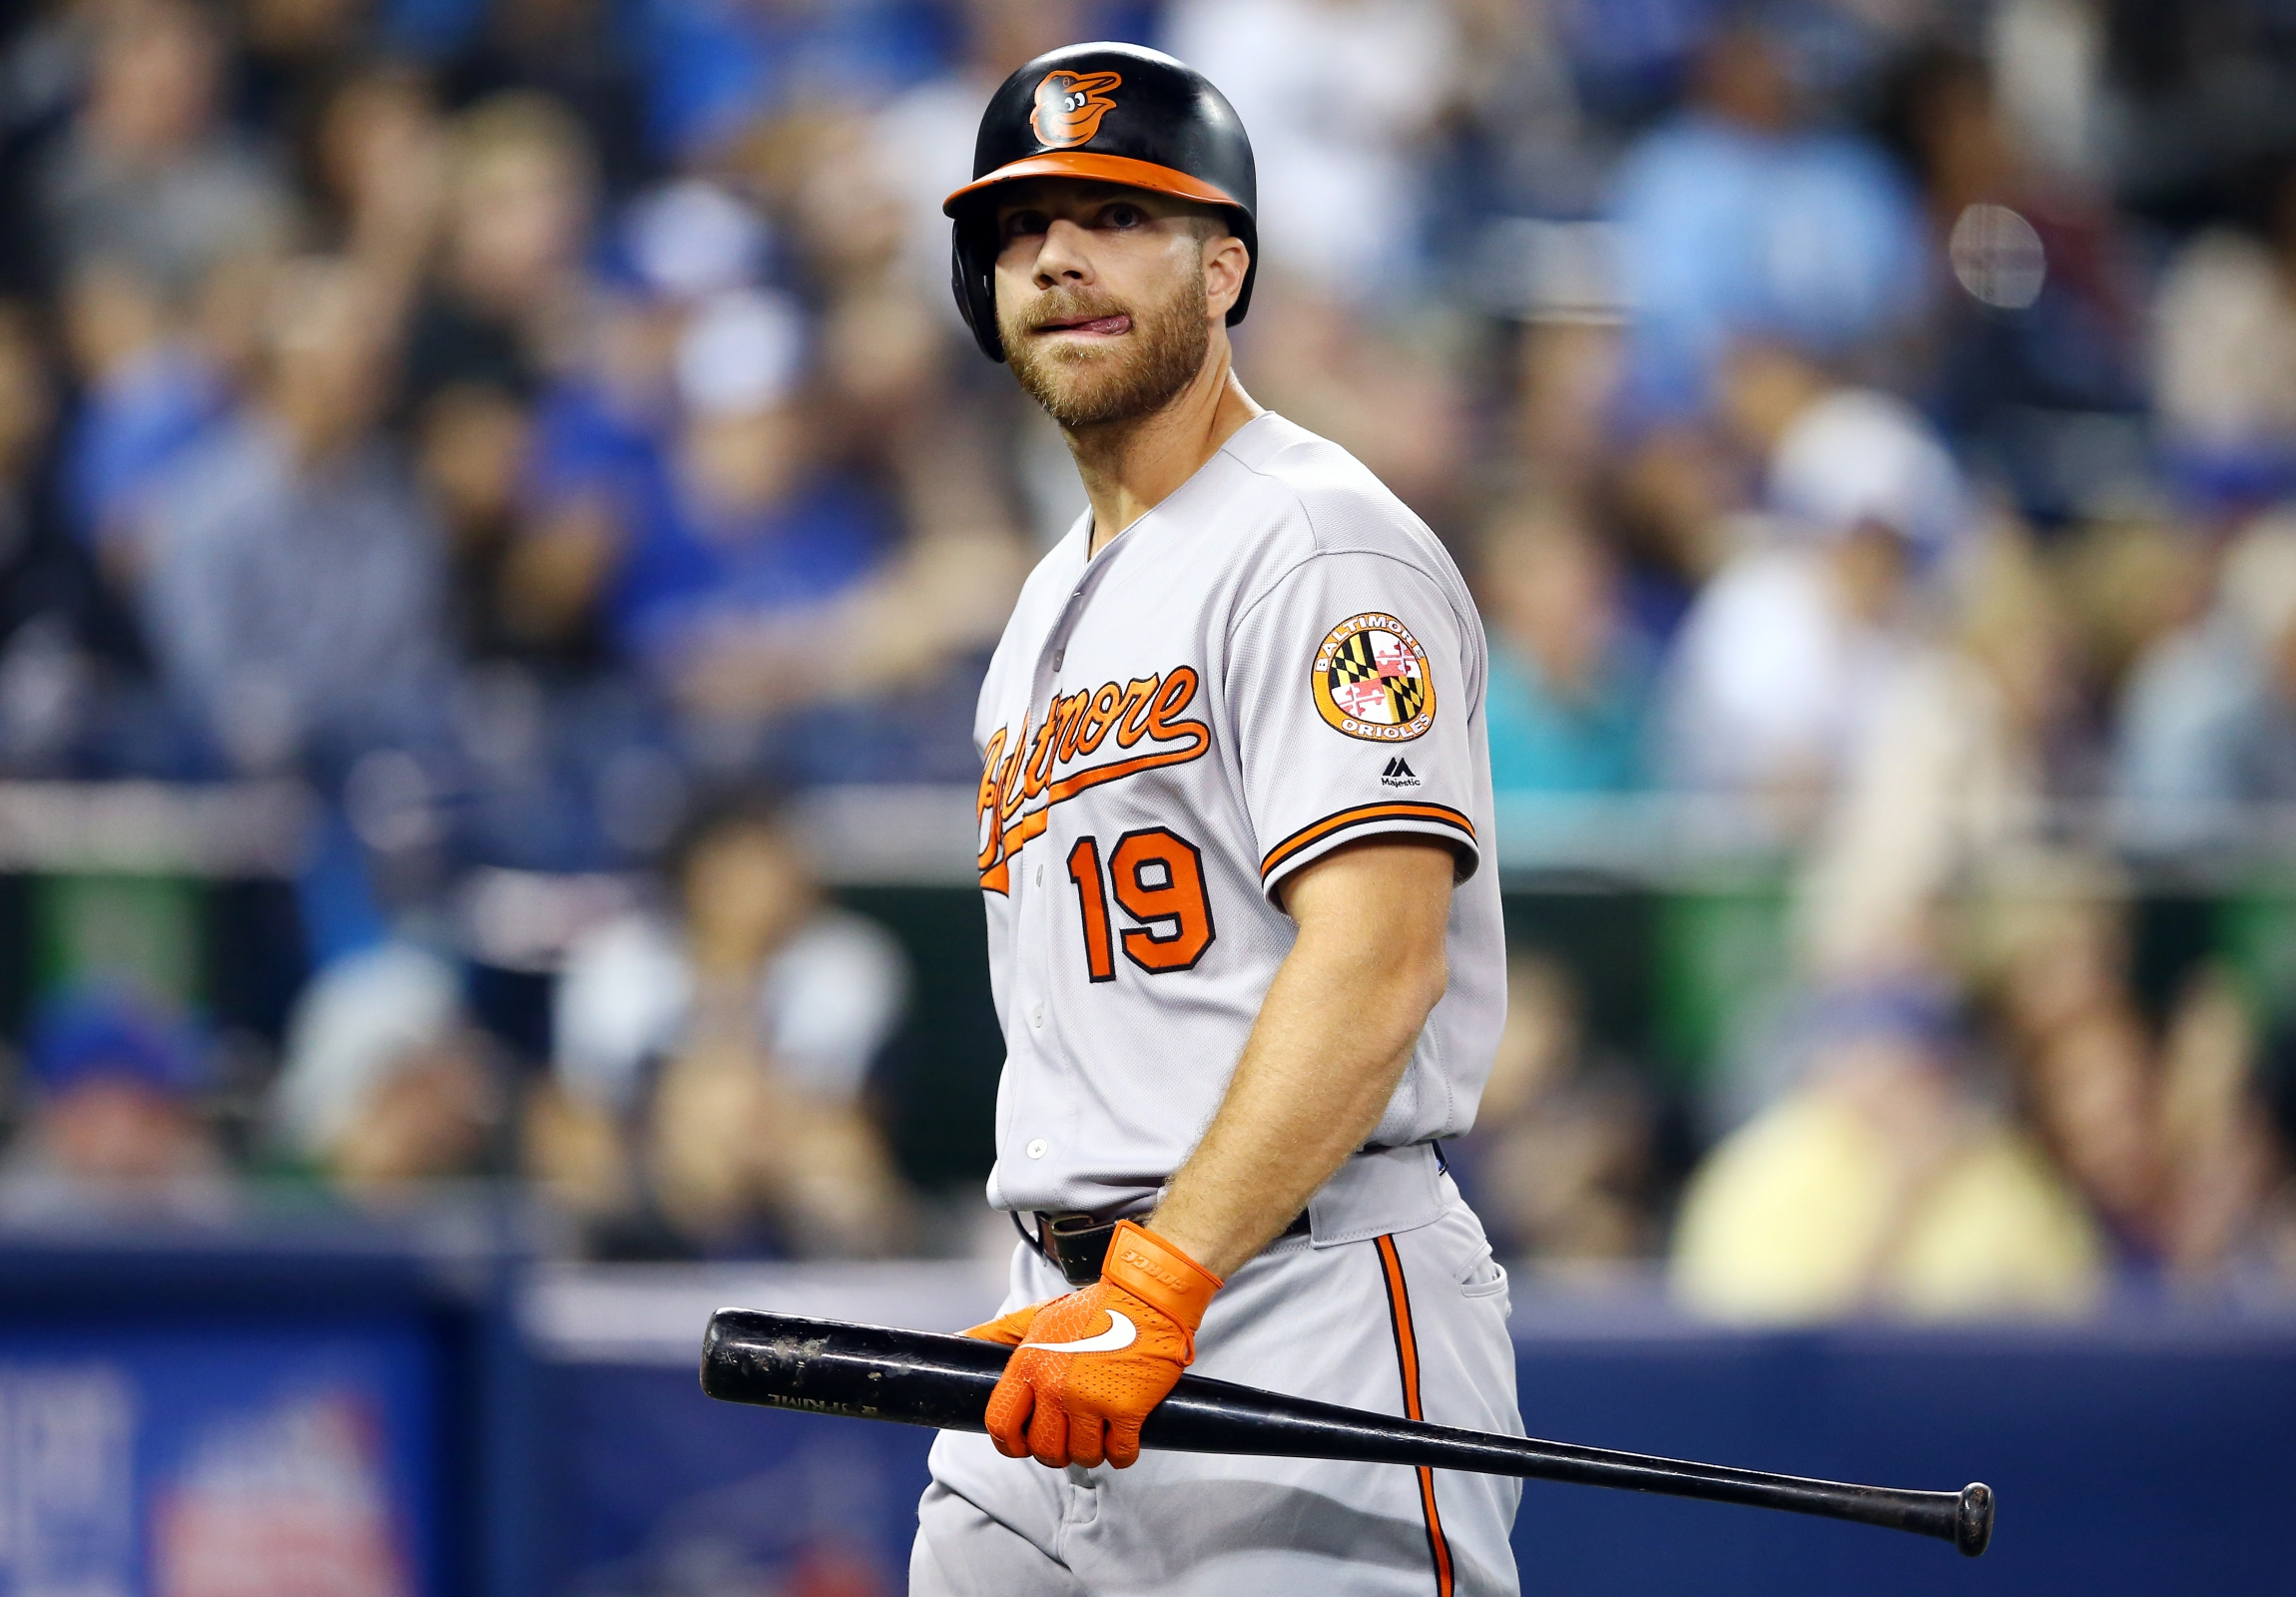 Chris Davis seen here immediately after making an out.